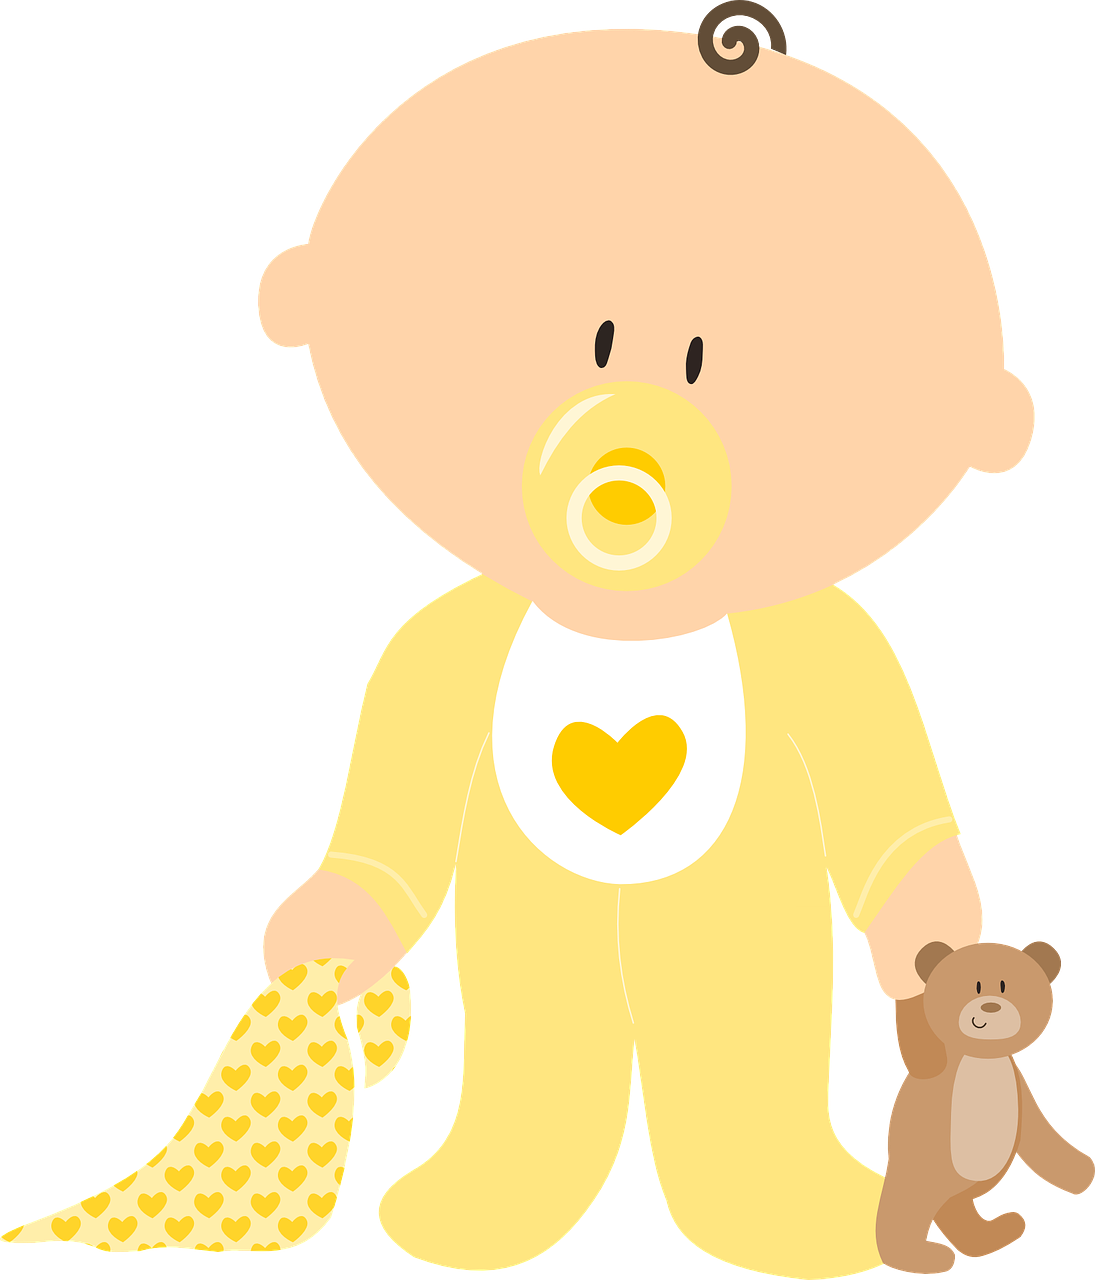 Gender neutral baby clipart clipart images gallery for free download.